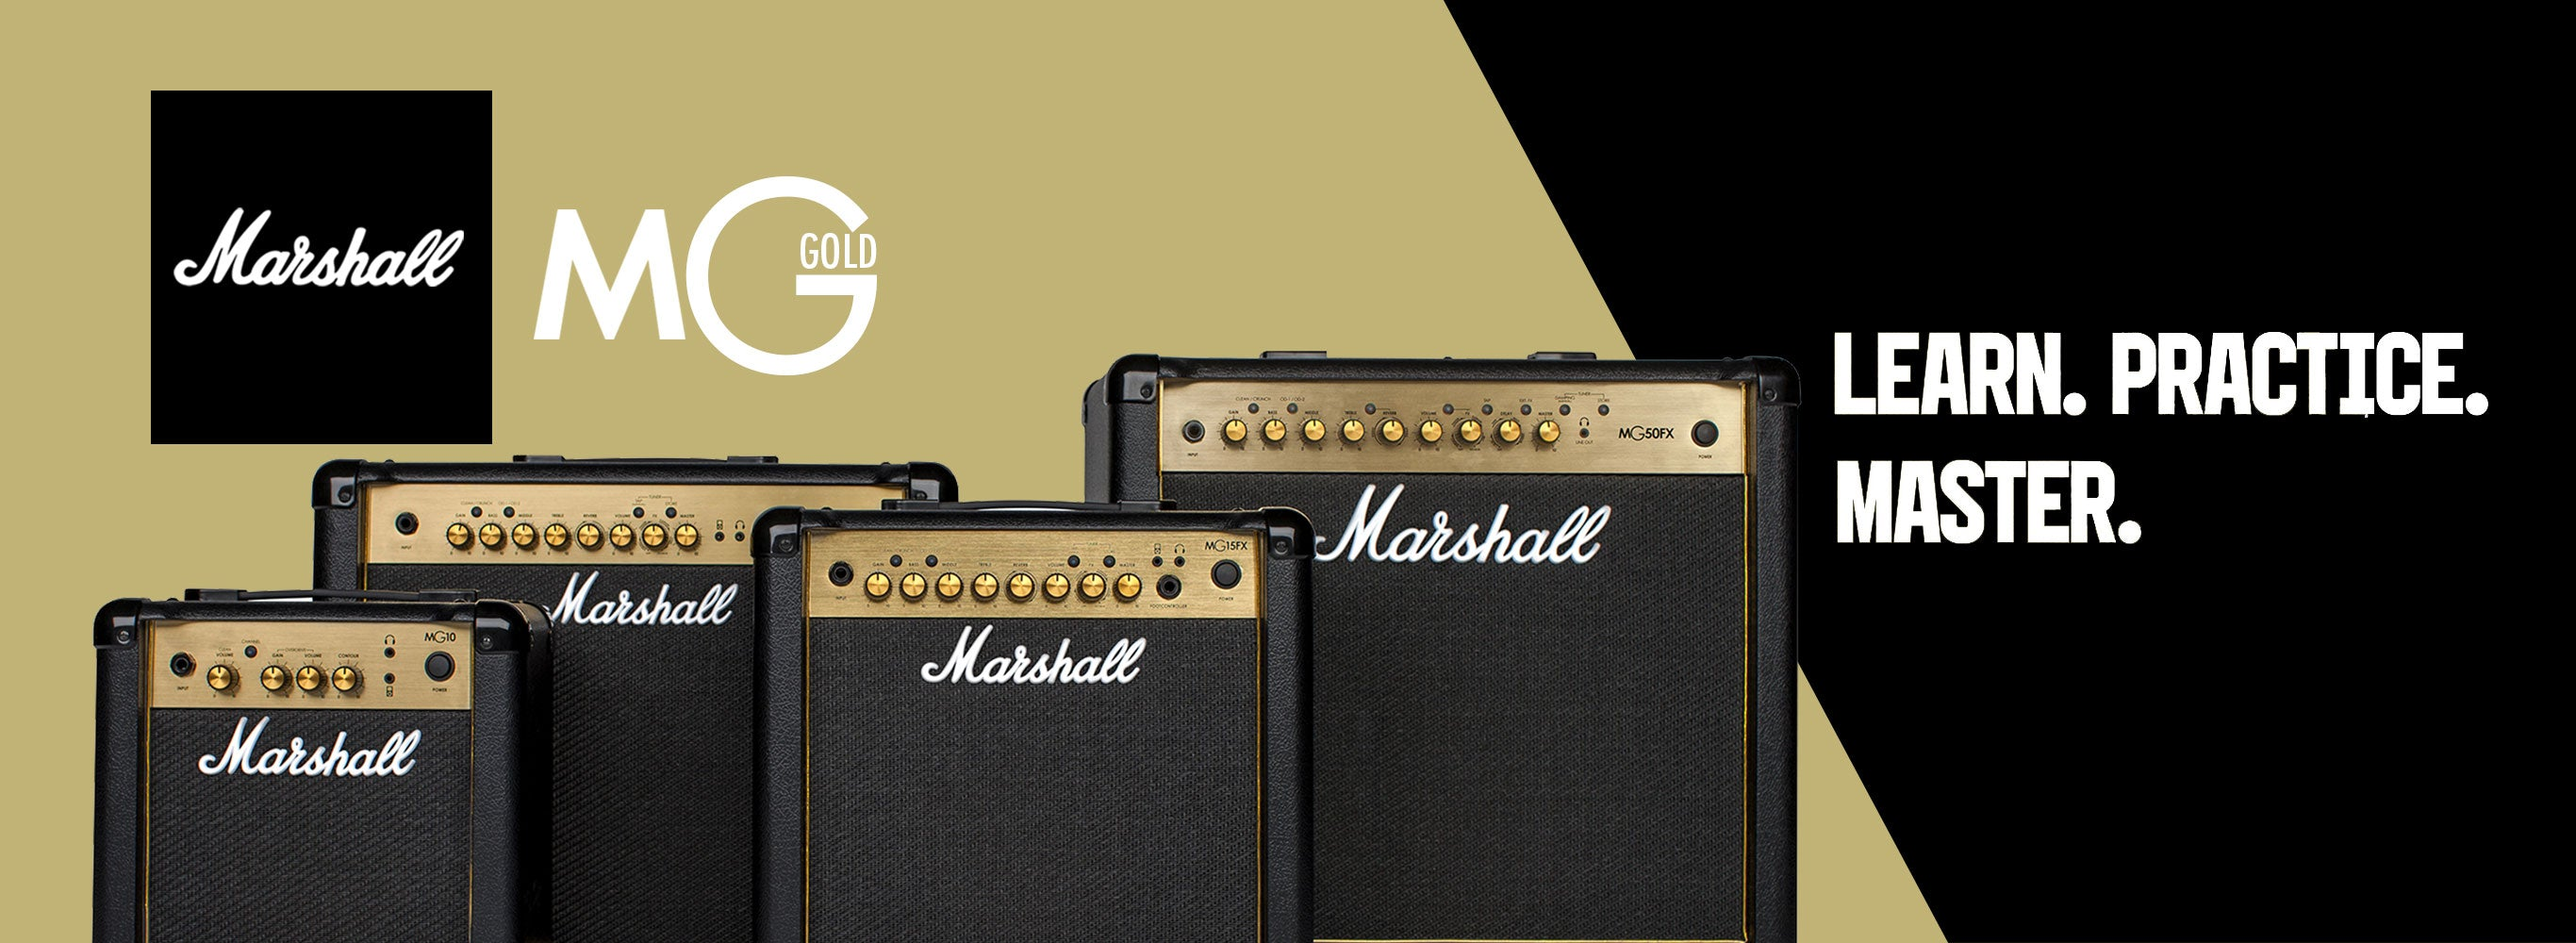 Marshall MG Gold Series Amplifiers New for 2018